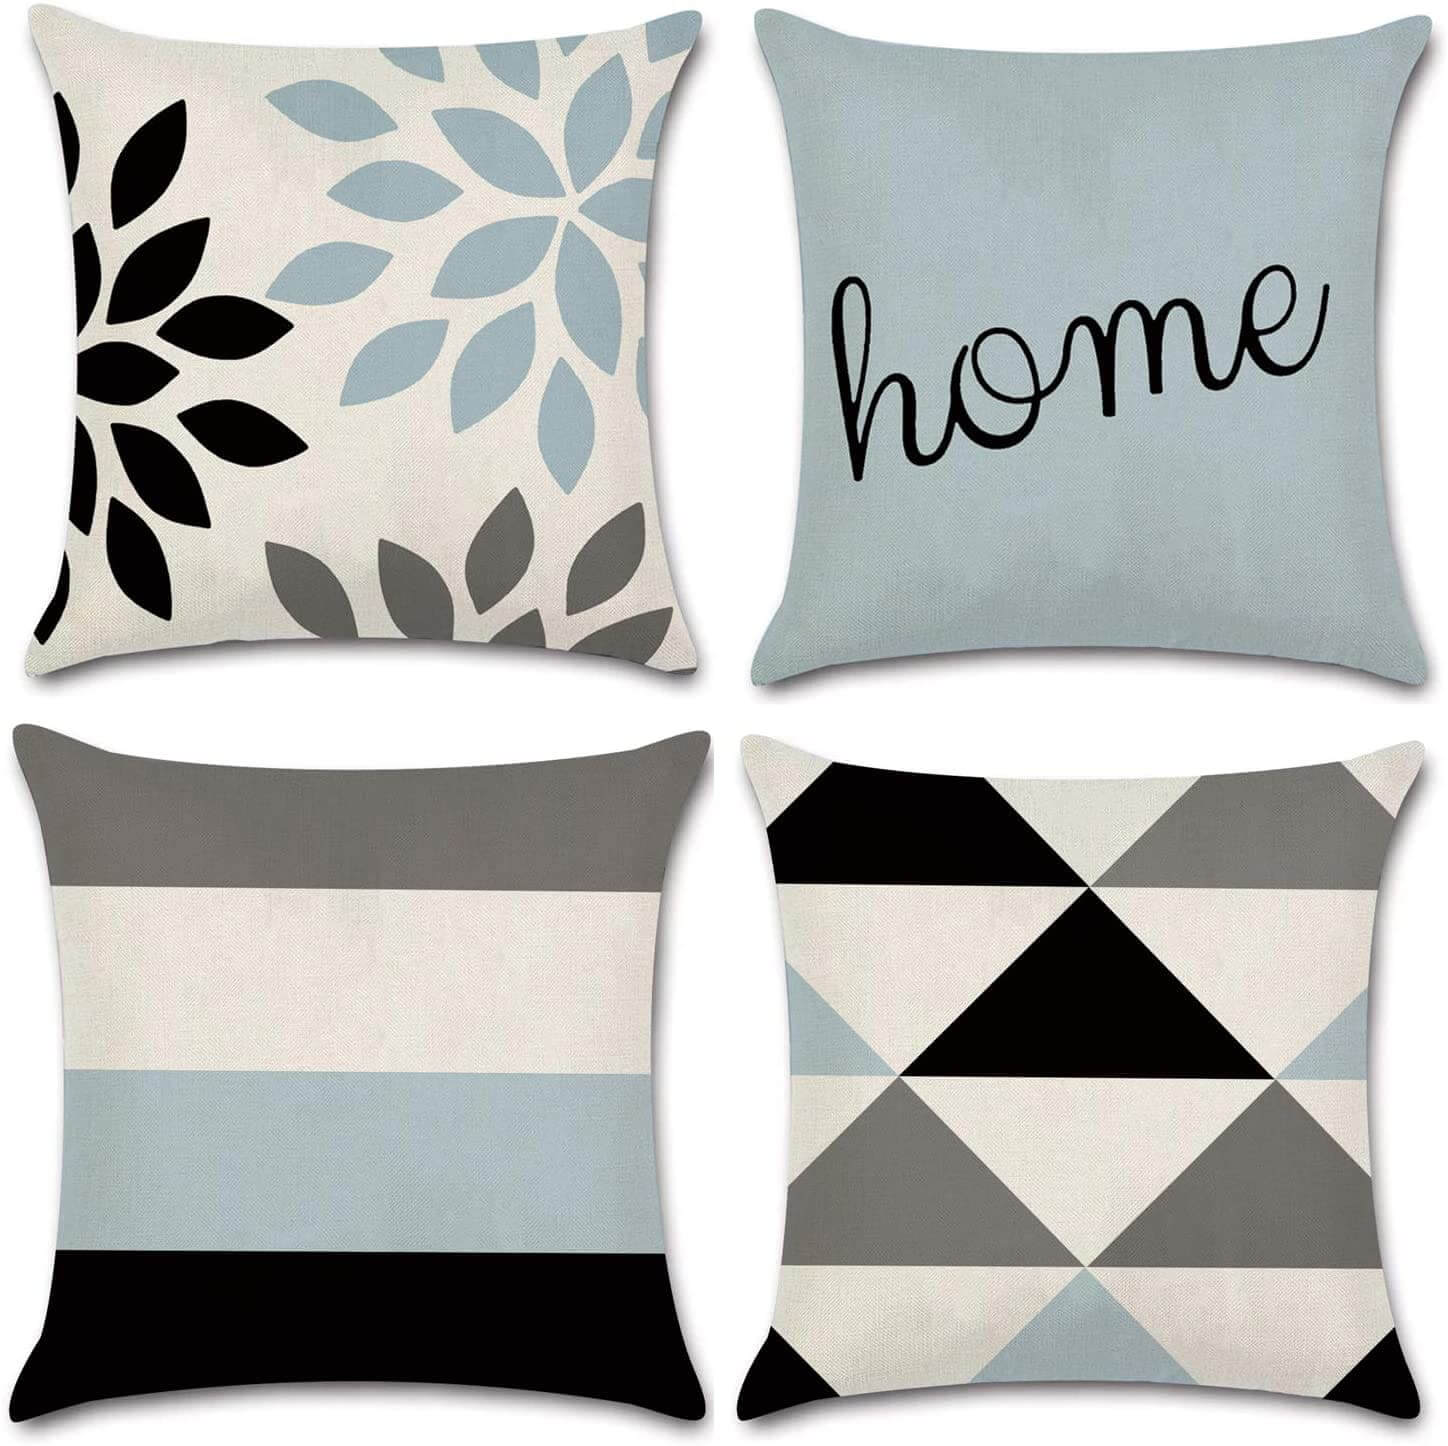 White, blue-gray, black, and brown throw pillow covers.